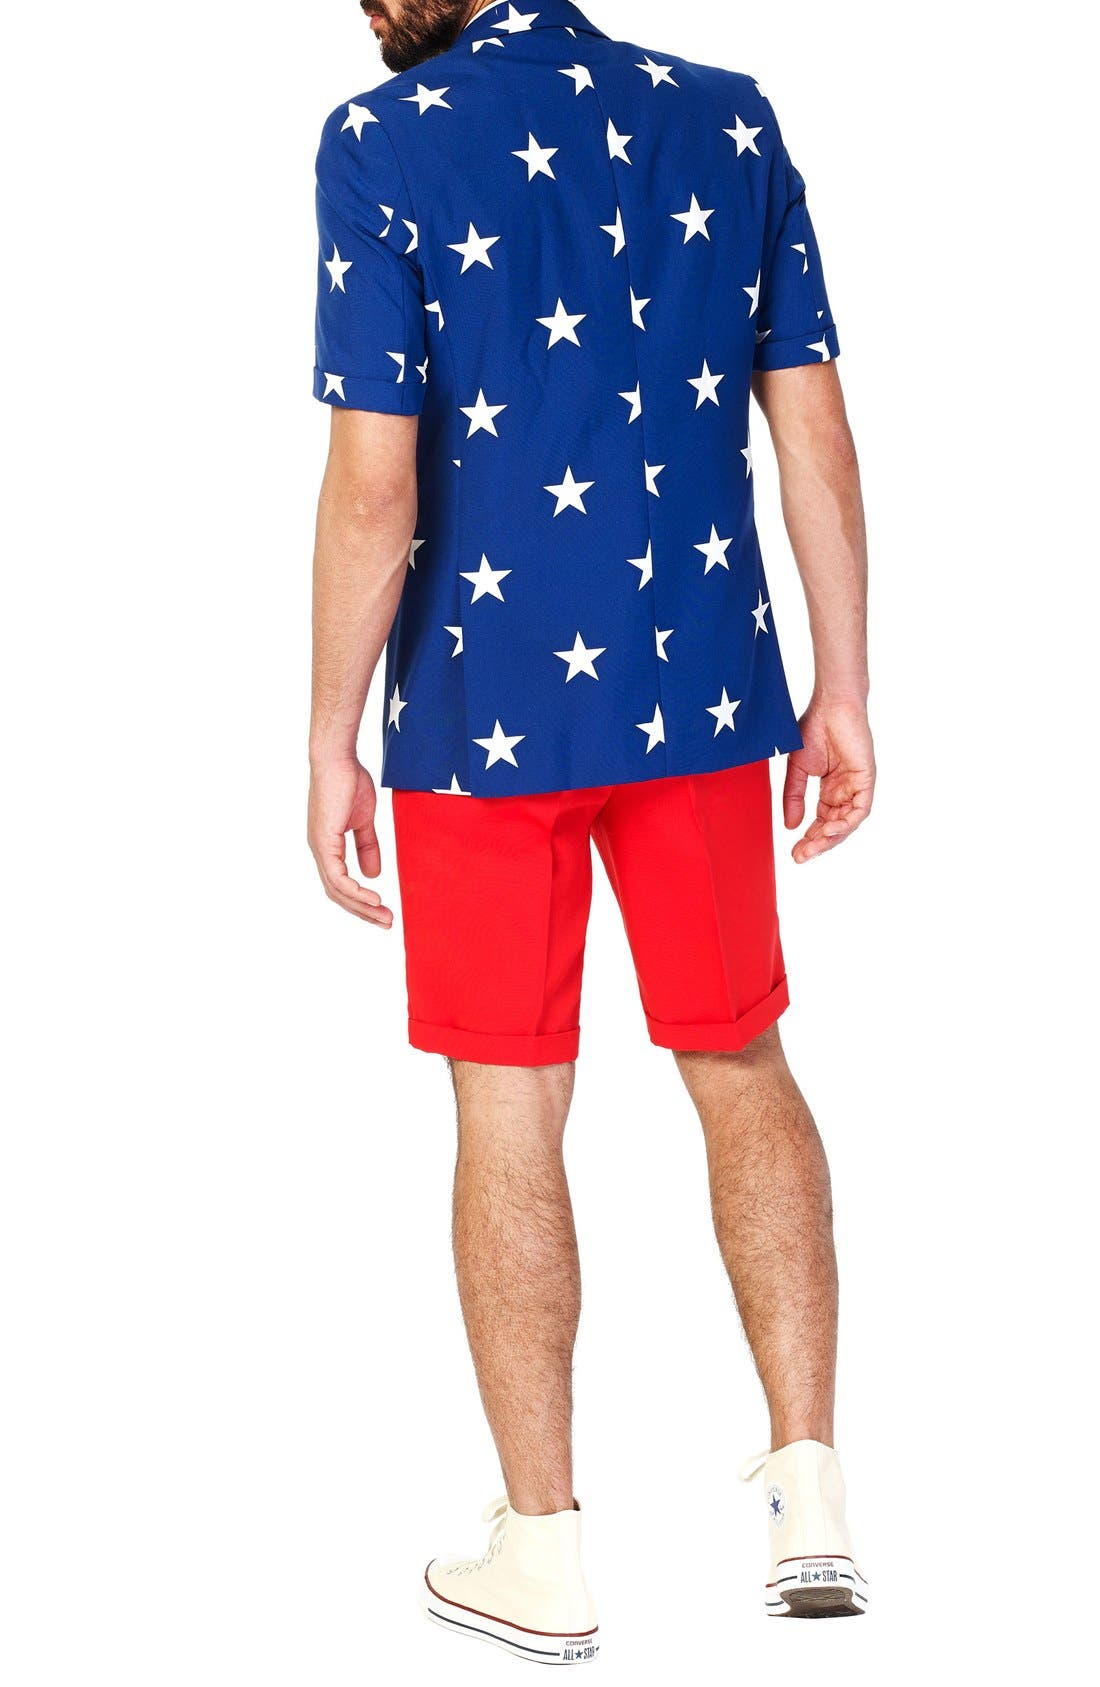 'Summer Stars & Stripes' Trim Fit Short Suit with Tie,                             Alternate thumbnail 2, color,                             Blue/ Red/ White